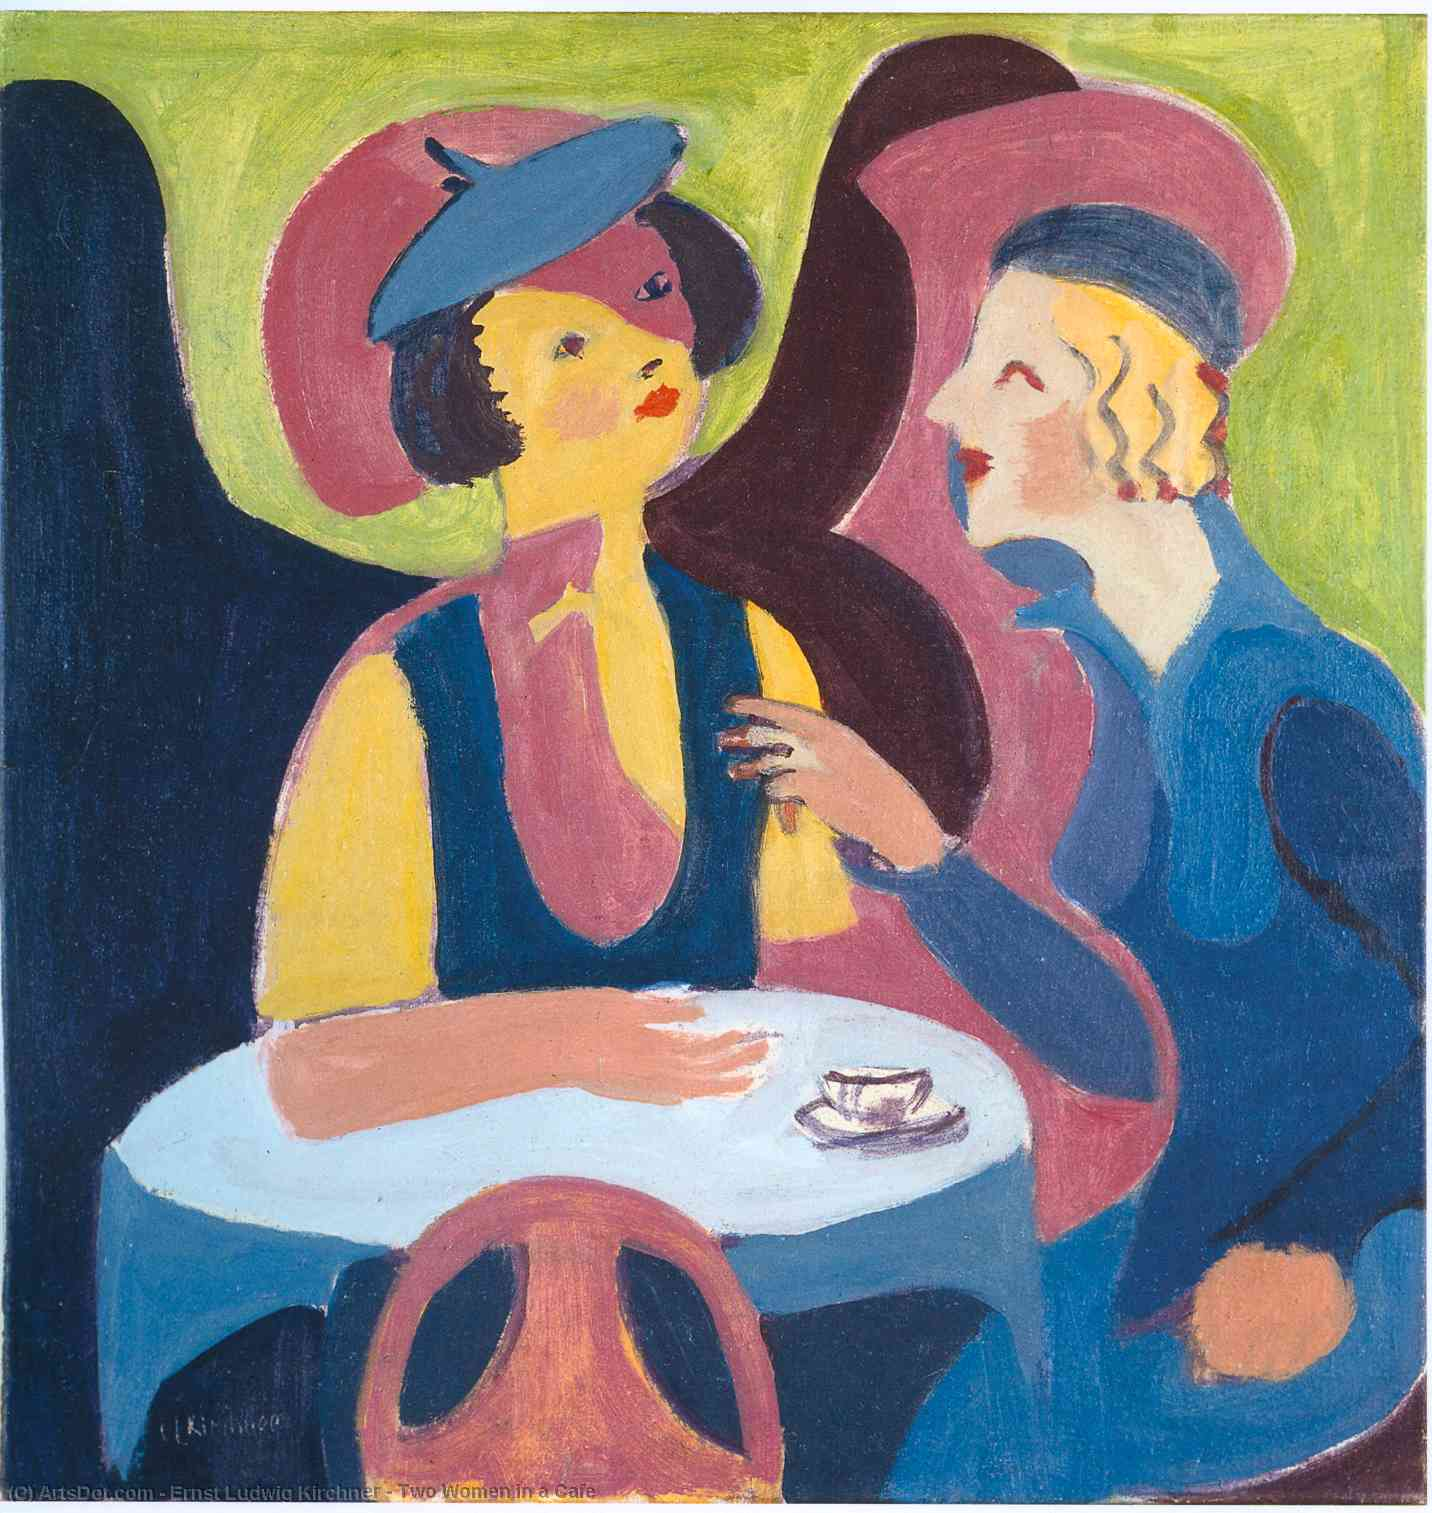 Wikioo.org - The Encyclopedia of Fine Arts - Painting, Artwork by Ernst Ludwig Kirchner - Two Women in a Cafe